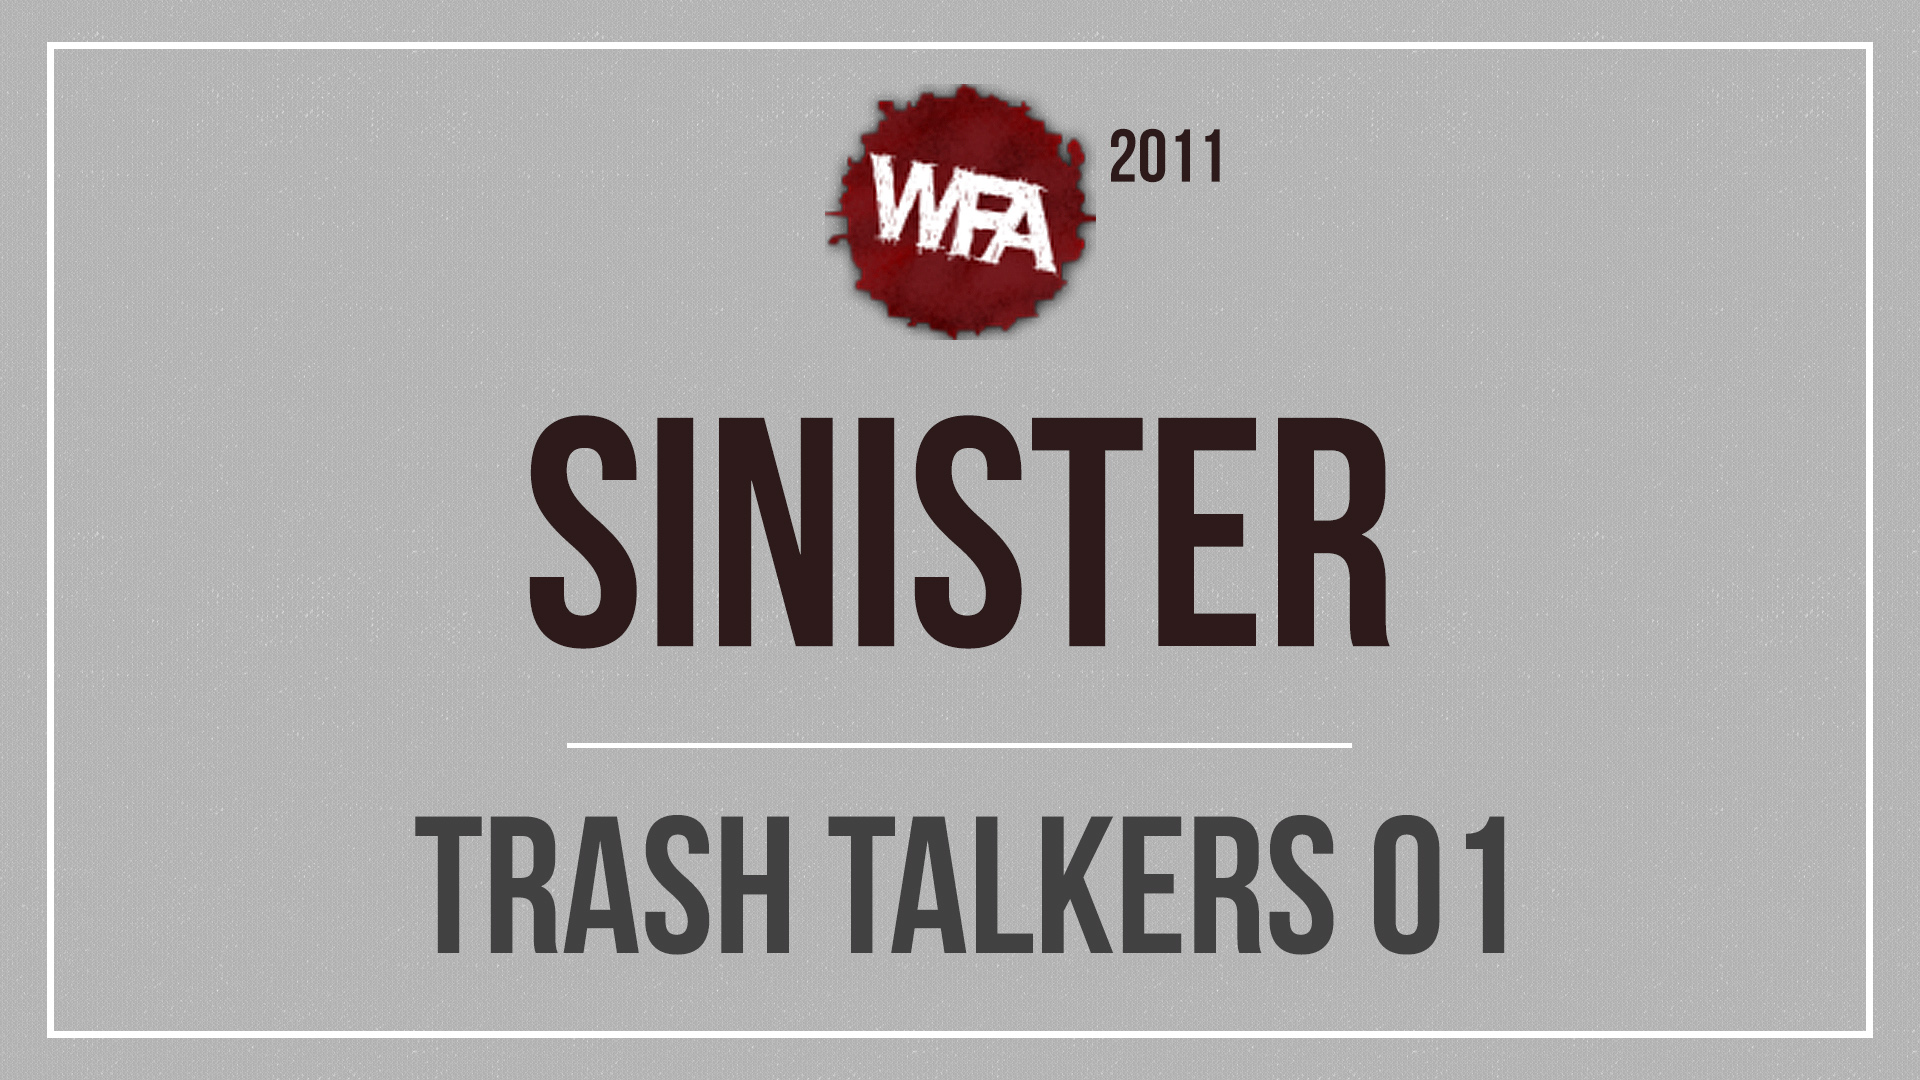 WFA 2011 Trash Talkers 01